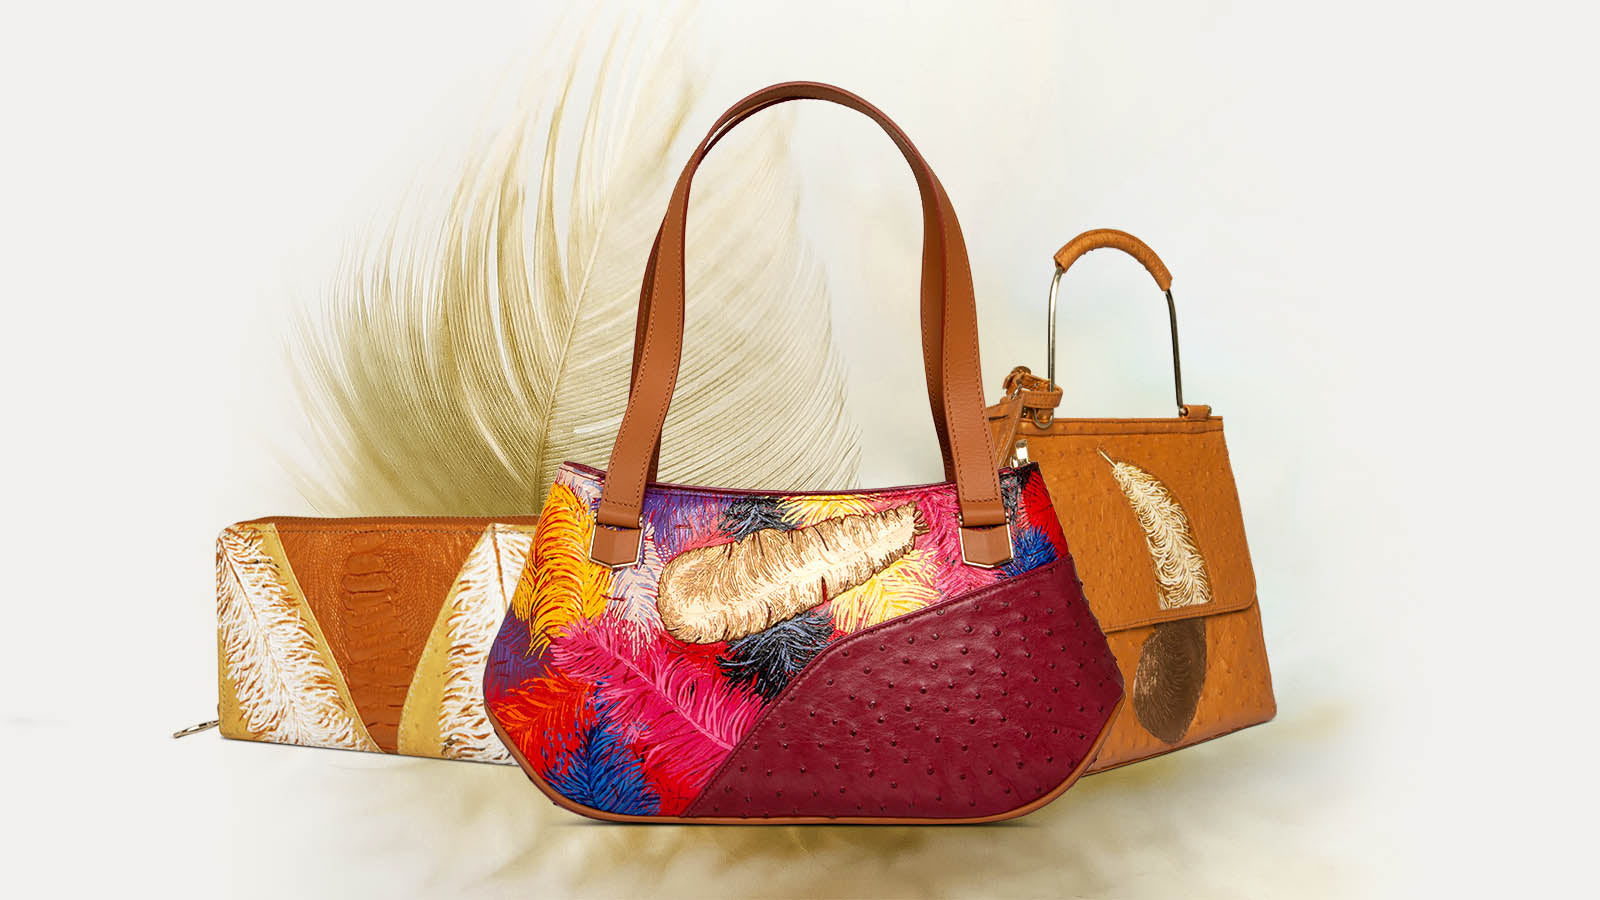 Original Ostrich Leather Bag collection for Women with hand painted artworks and metal carving